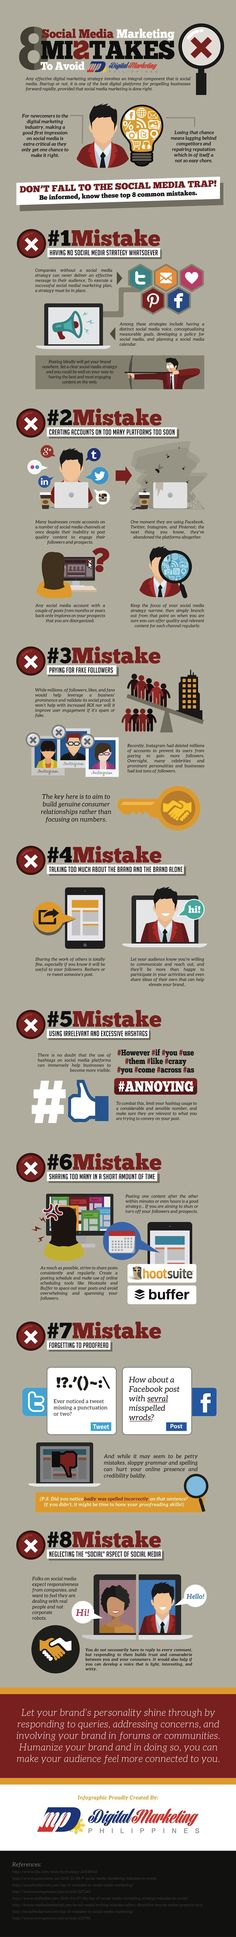 8 Social Media Marketing Mistakes To Avoid [Infographic]